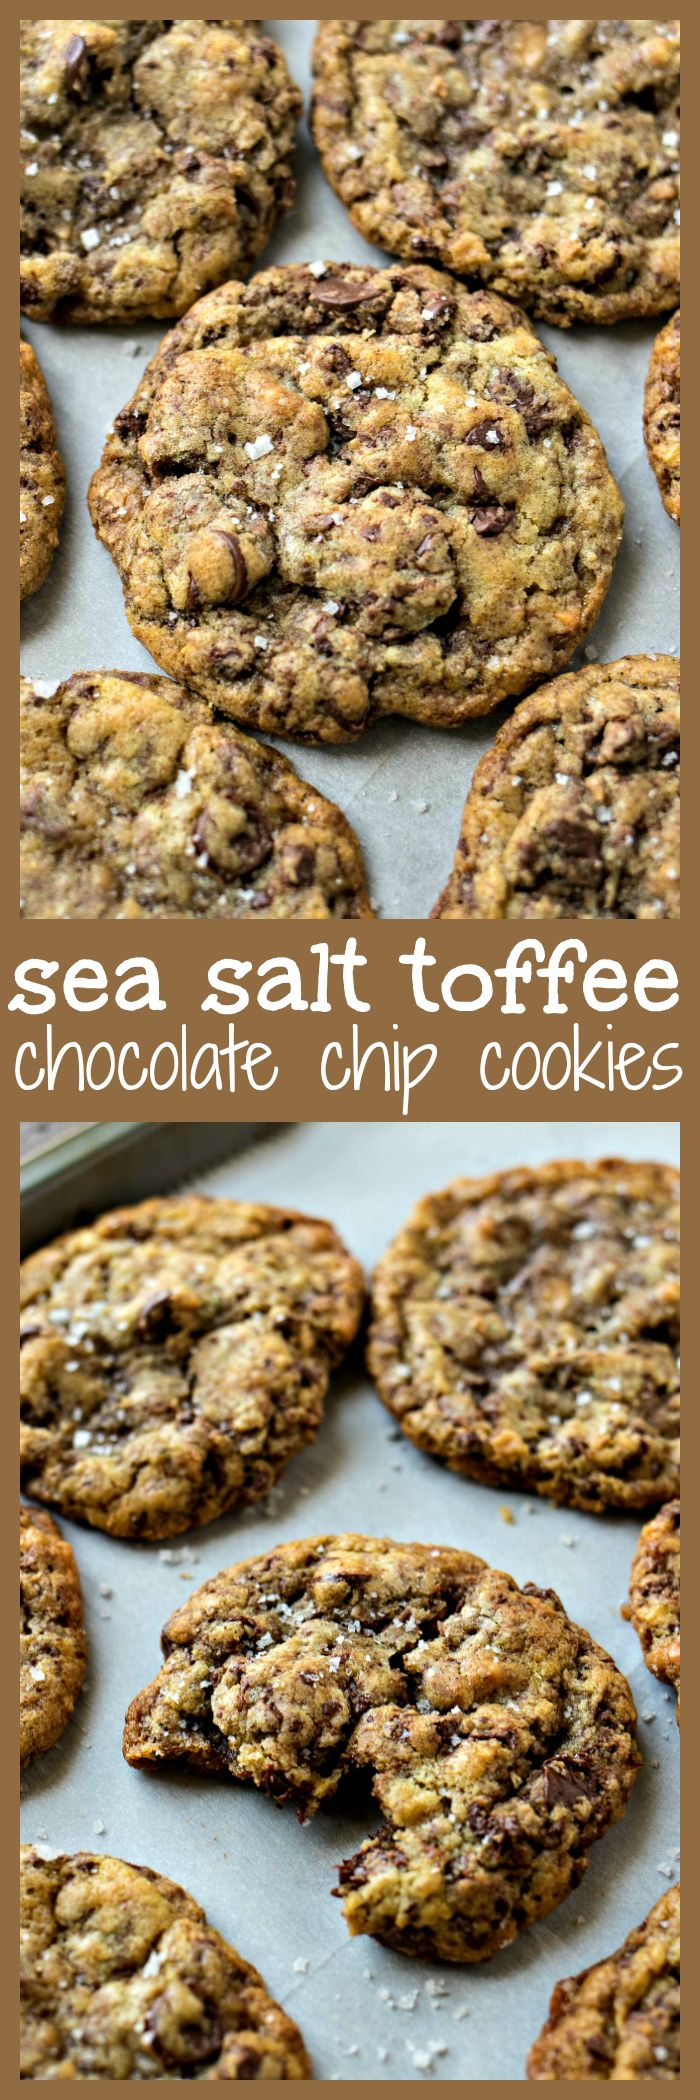 Sea Salt Toffee Chocolate Chip Cookies – Chewy chocolate chip cookies are given a gourmet makeover with the addition of toffee bits and a sprinkle of sea salt